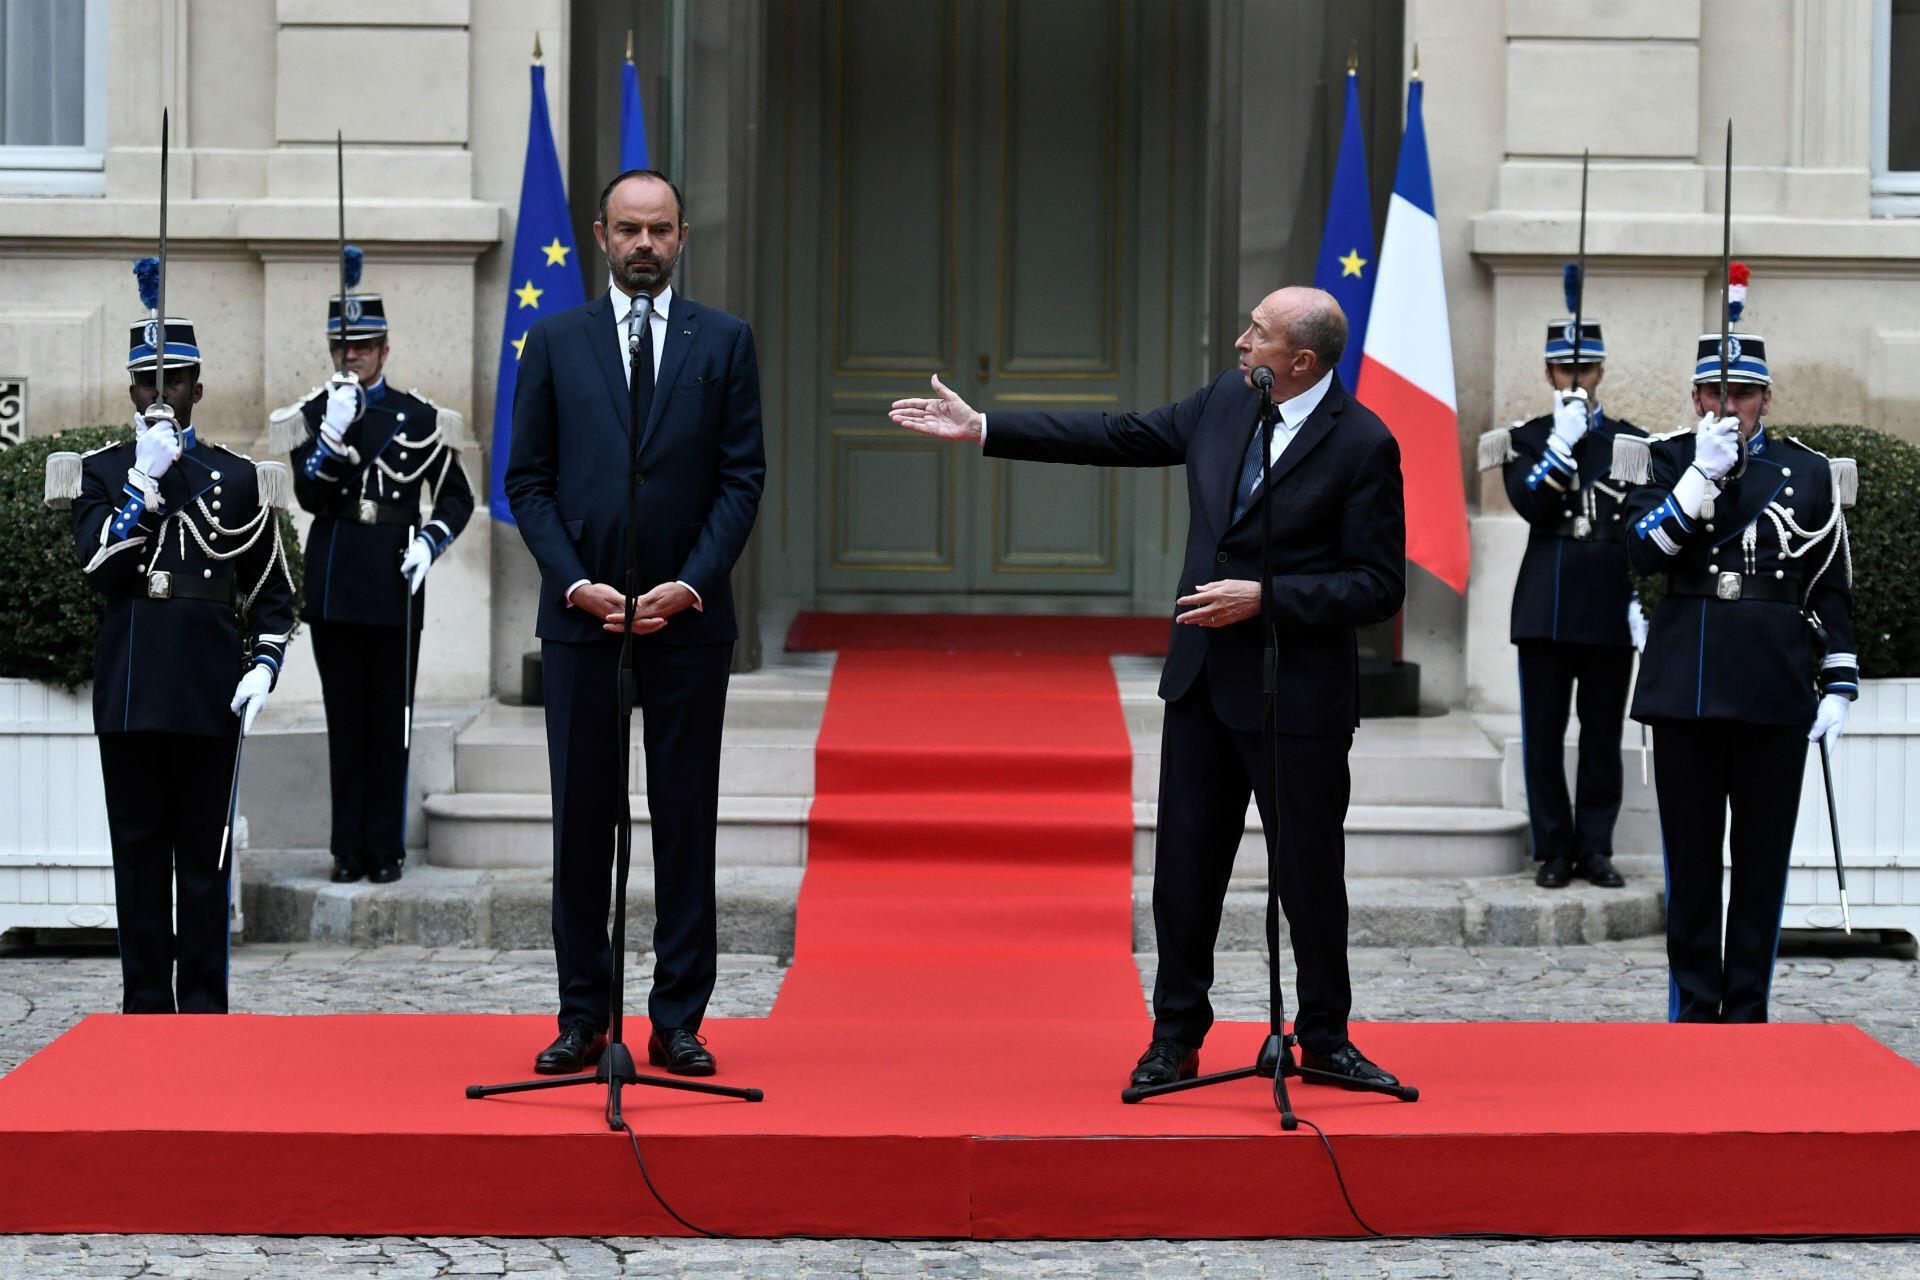 """Another high-profile resignation came on October 1, when interior minister Gérard Collomb stepped down. The president refused his resignation several times before finally accepting it. The resignation represented the final fissure in the two men's relationship: Collomb had criticised his former protégé in September for his """"want of humility""""."""